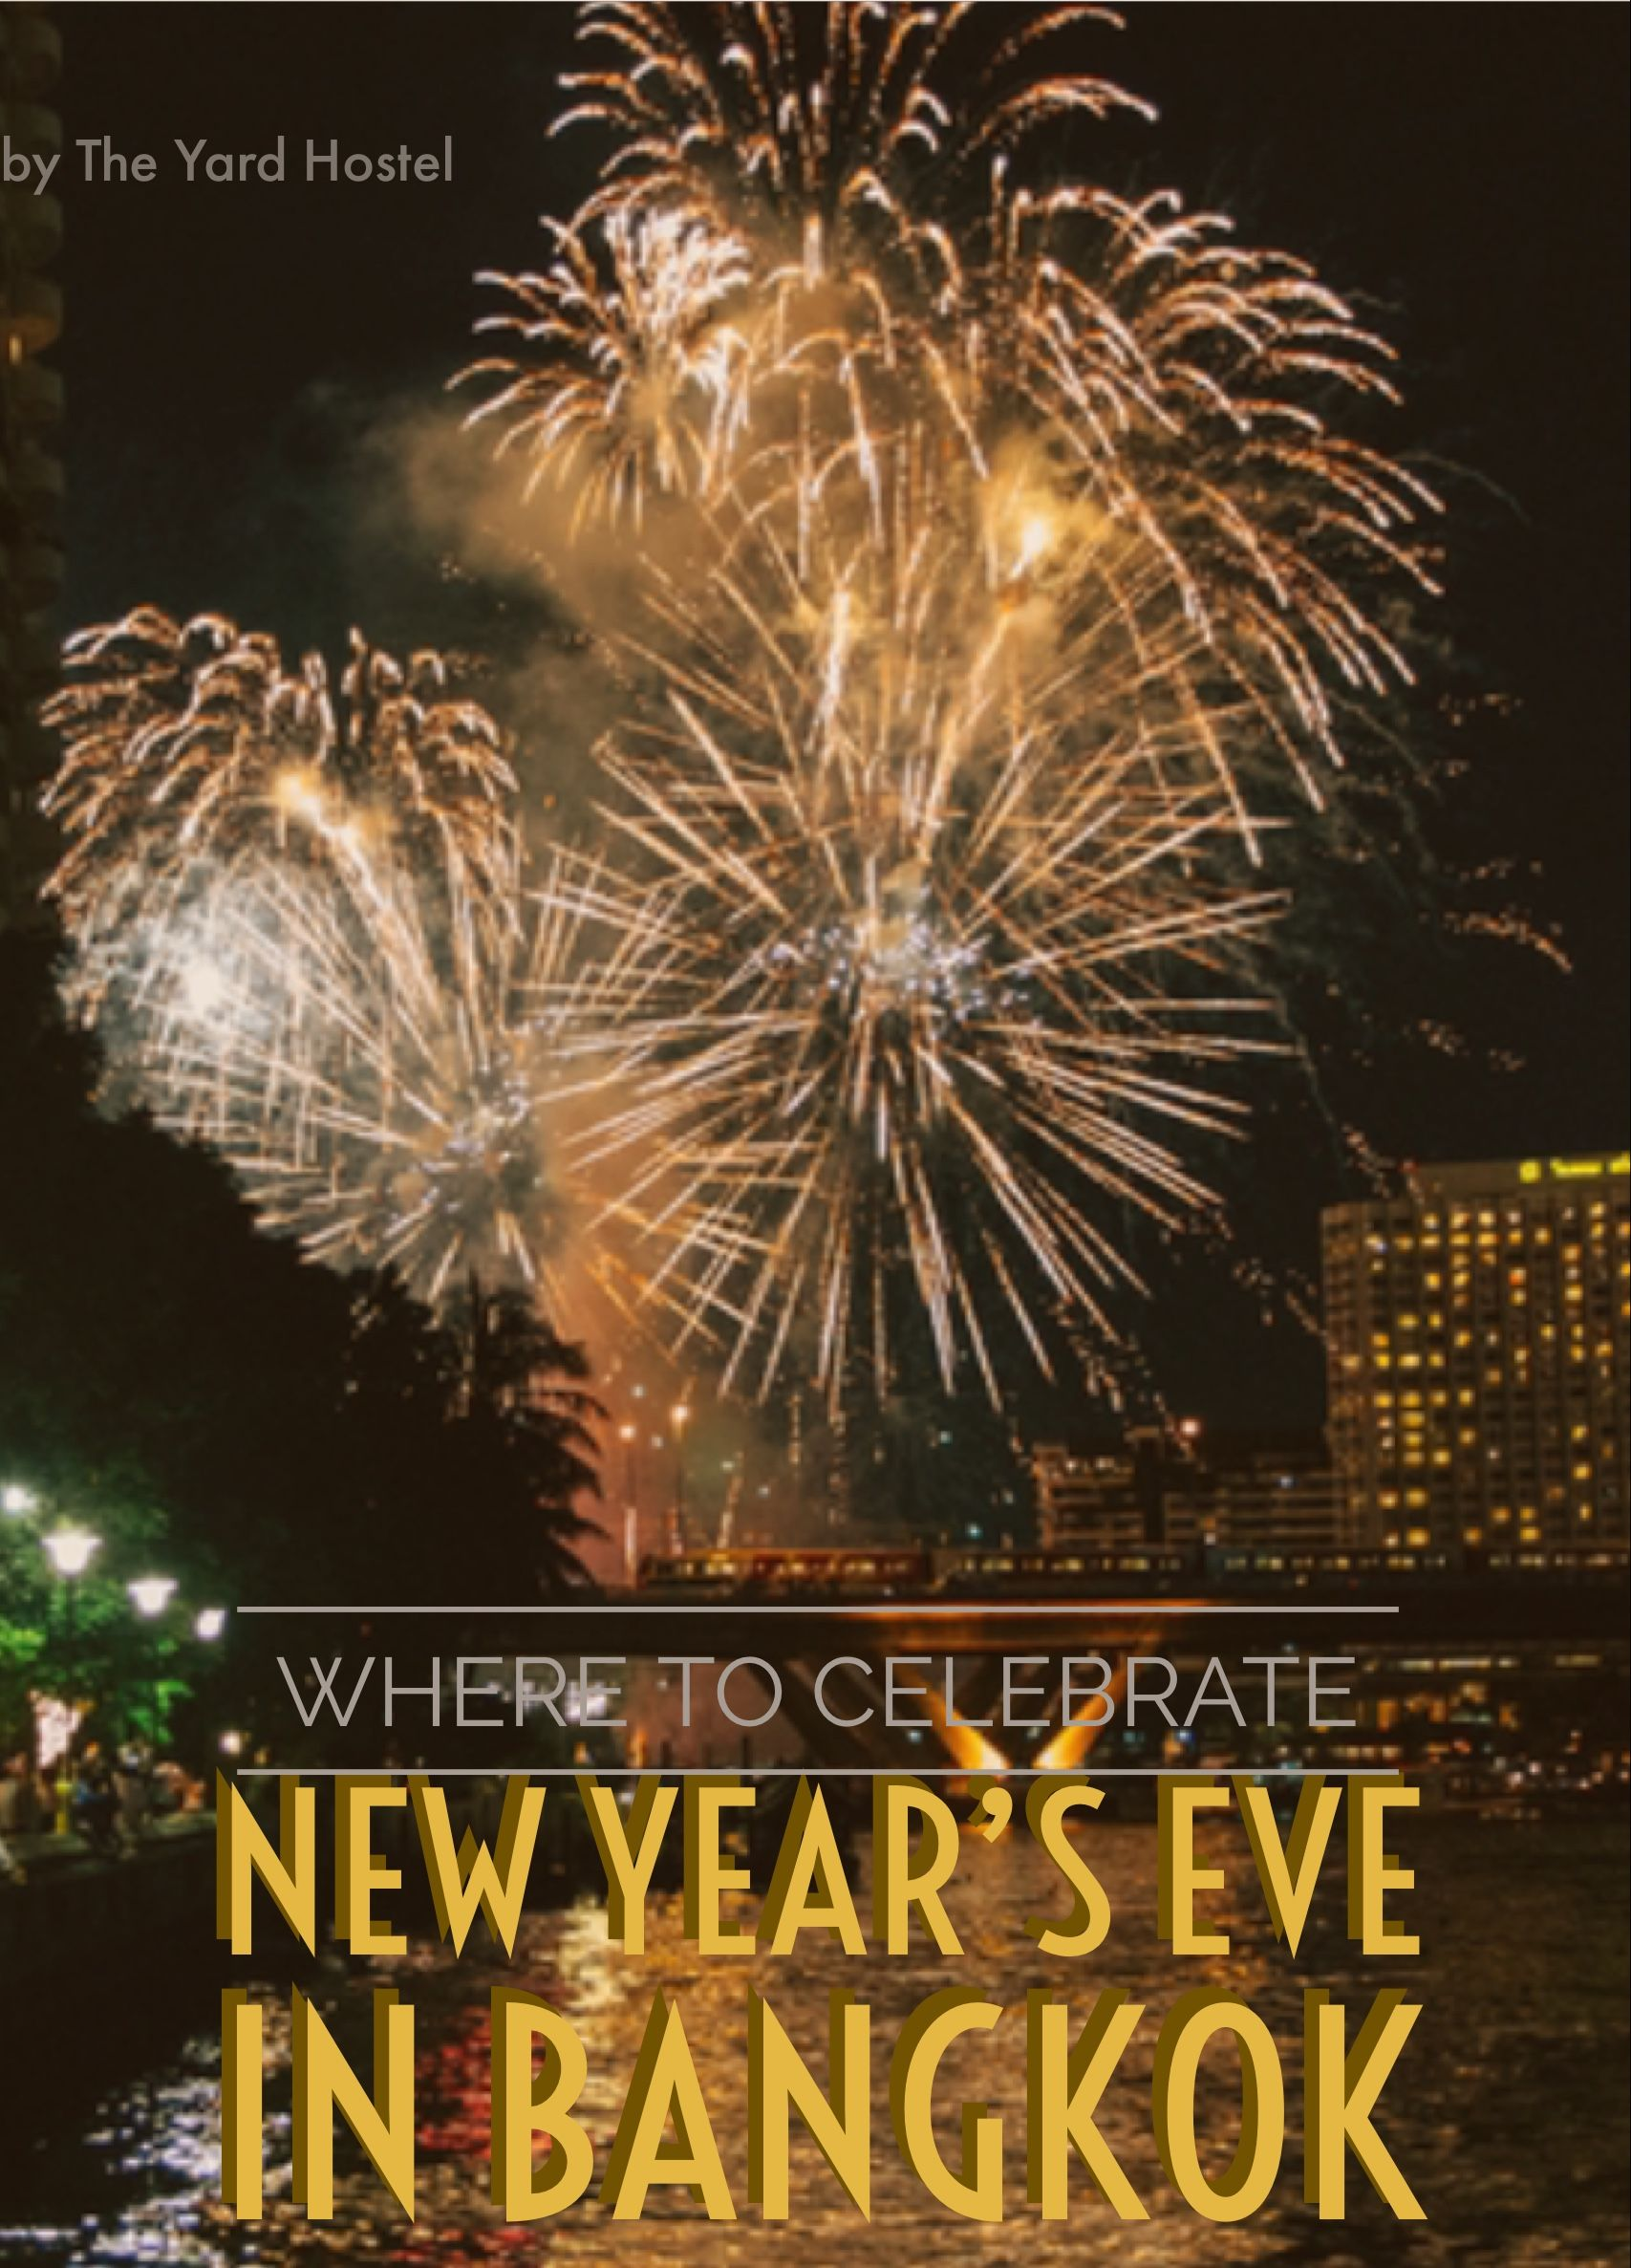 New Years Eve In Bangkok Where To Celebrate With Images New Year S Eve Around The World Thailand New Year New Years Eve